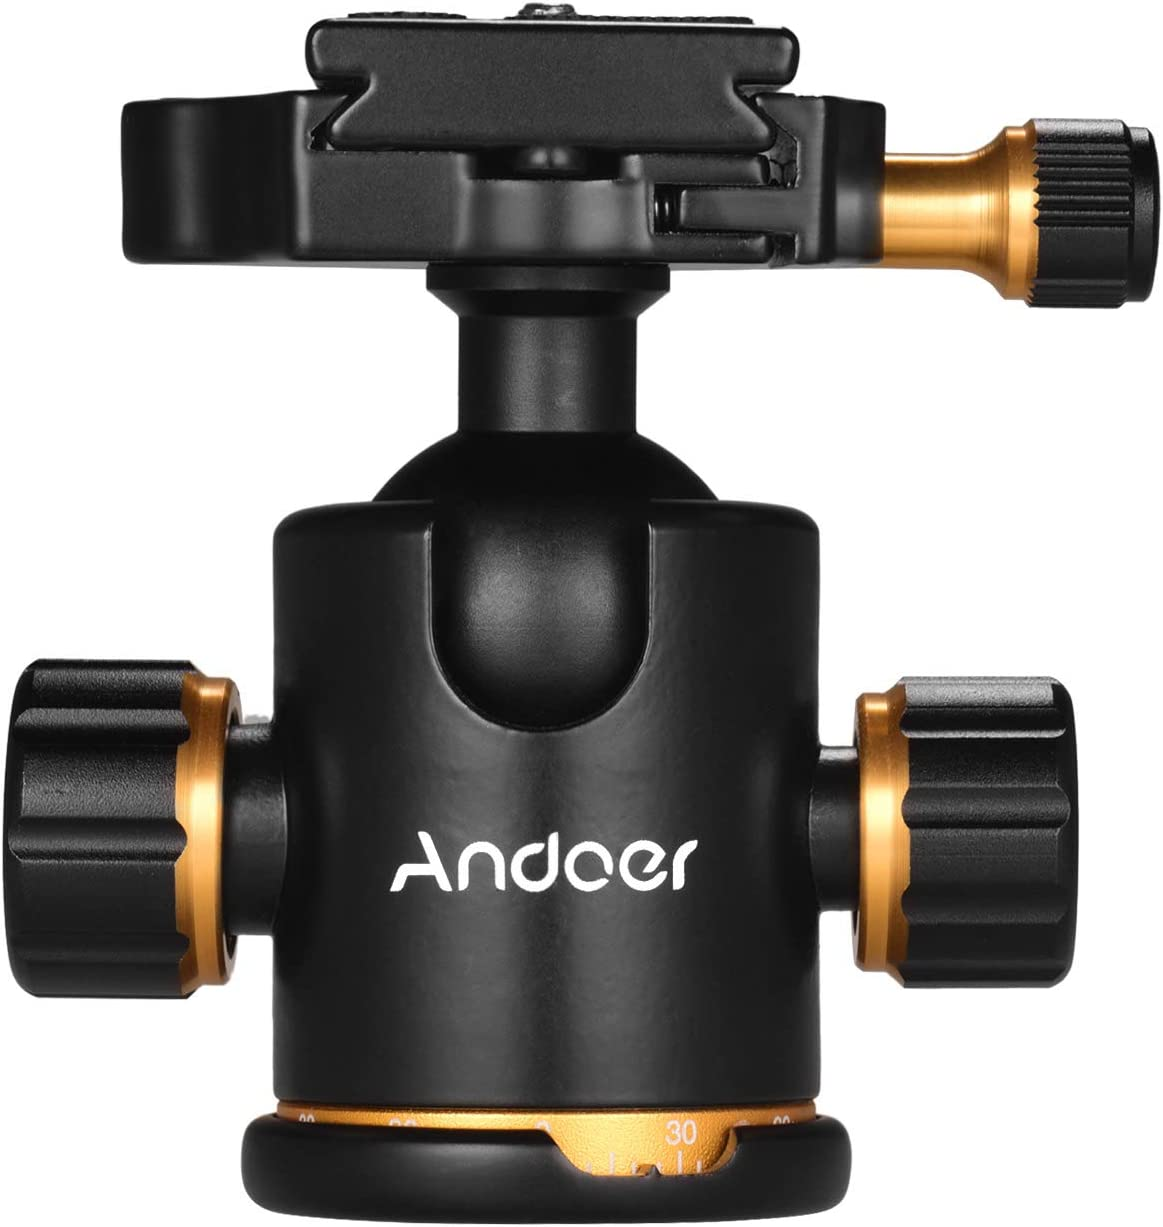 Andoer Tripod Ball Head Aluminium Alloy Panoramic Ballhead Mount Adapter 360/° Rotating with Quick Release Plate 3kg//6.6lbs Load Capacity